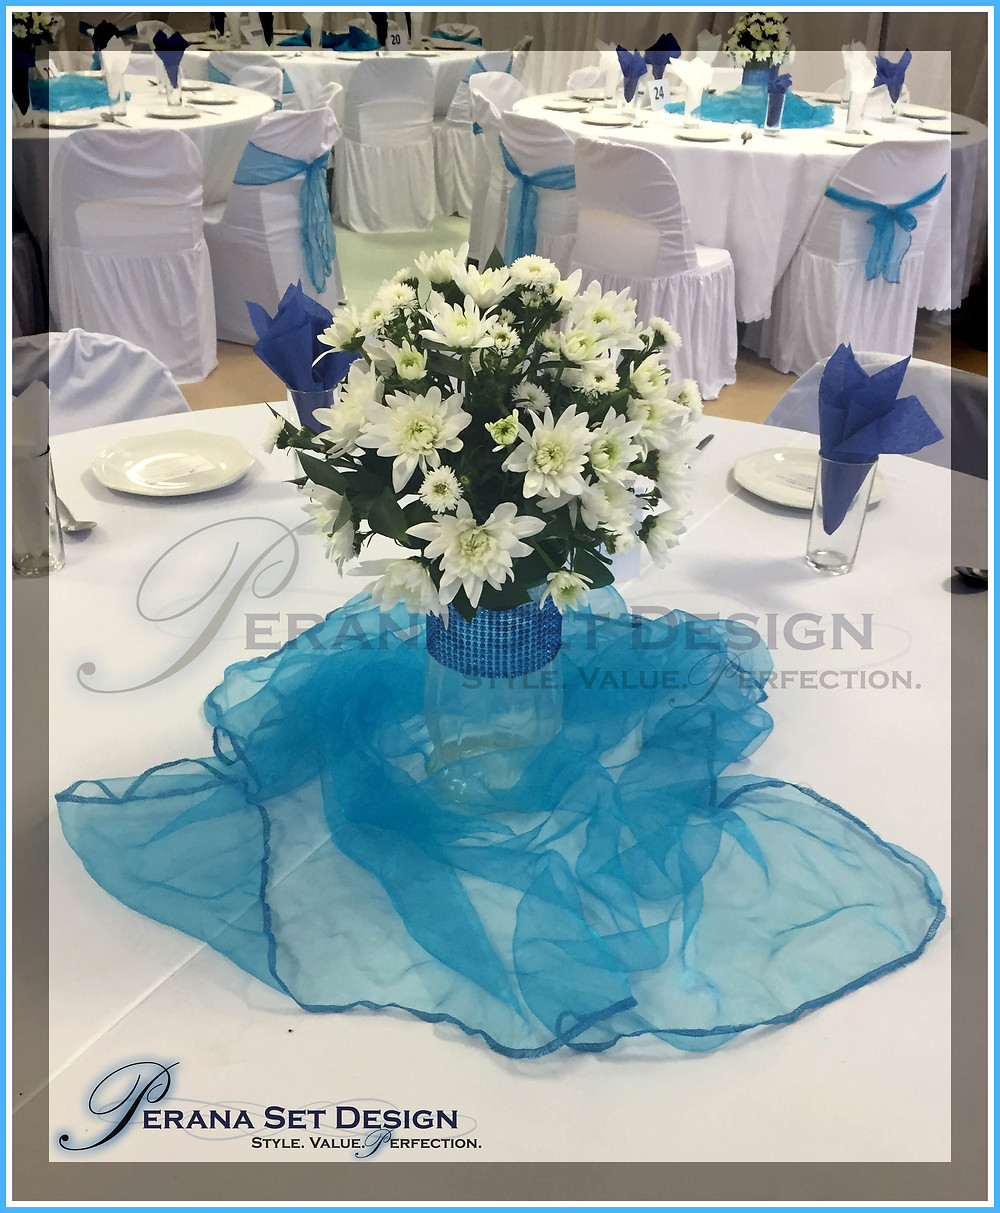 Flowers by Perana Set Design, sponsored for Phoenix Child Welfare